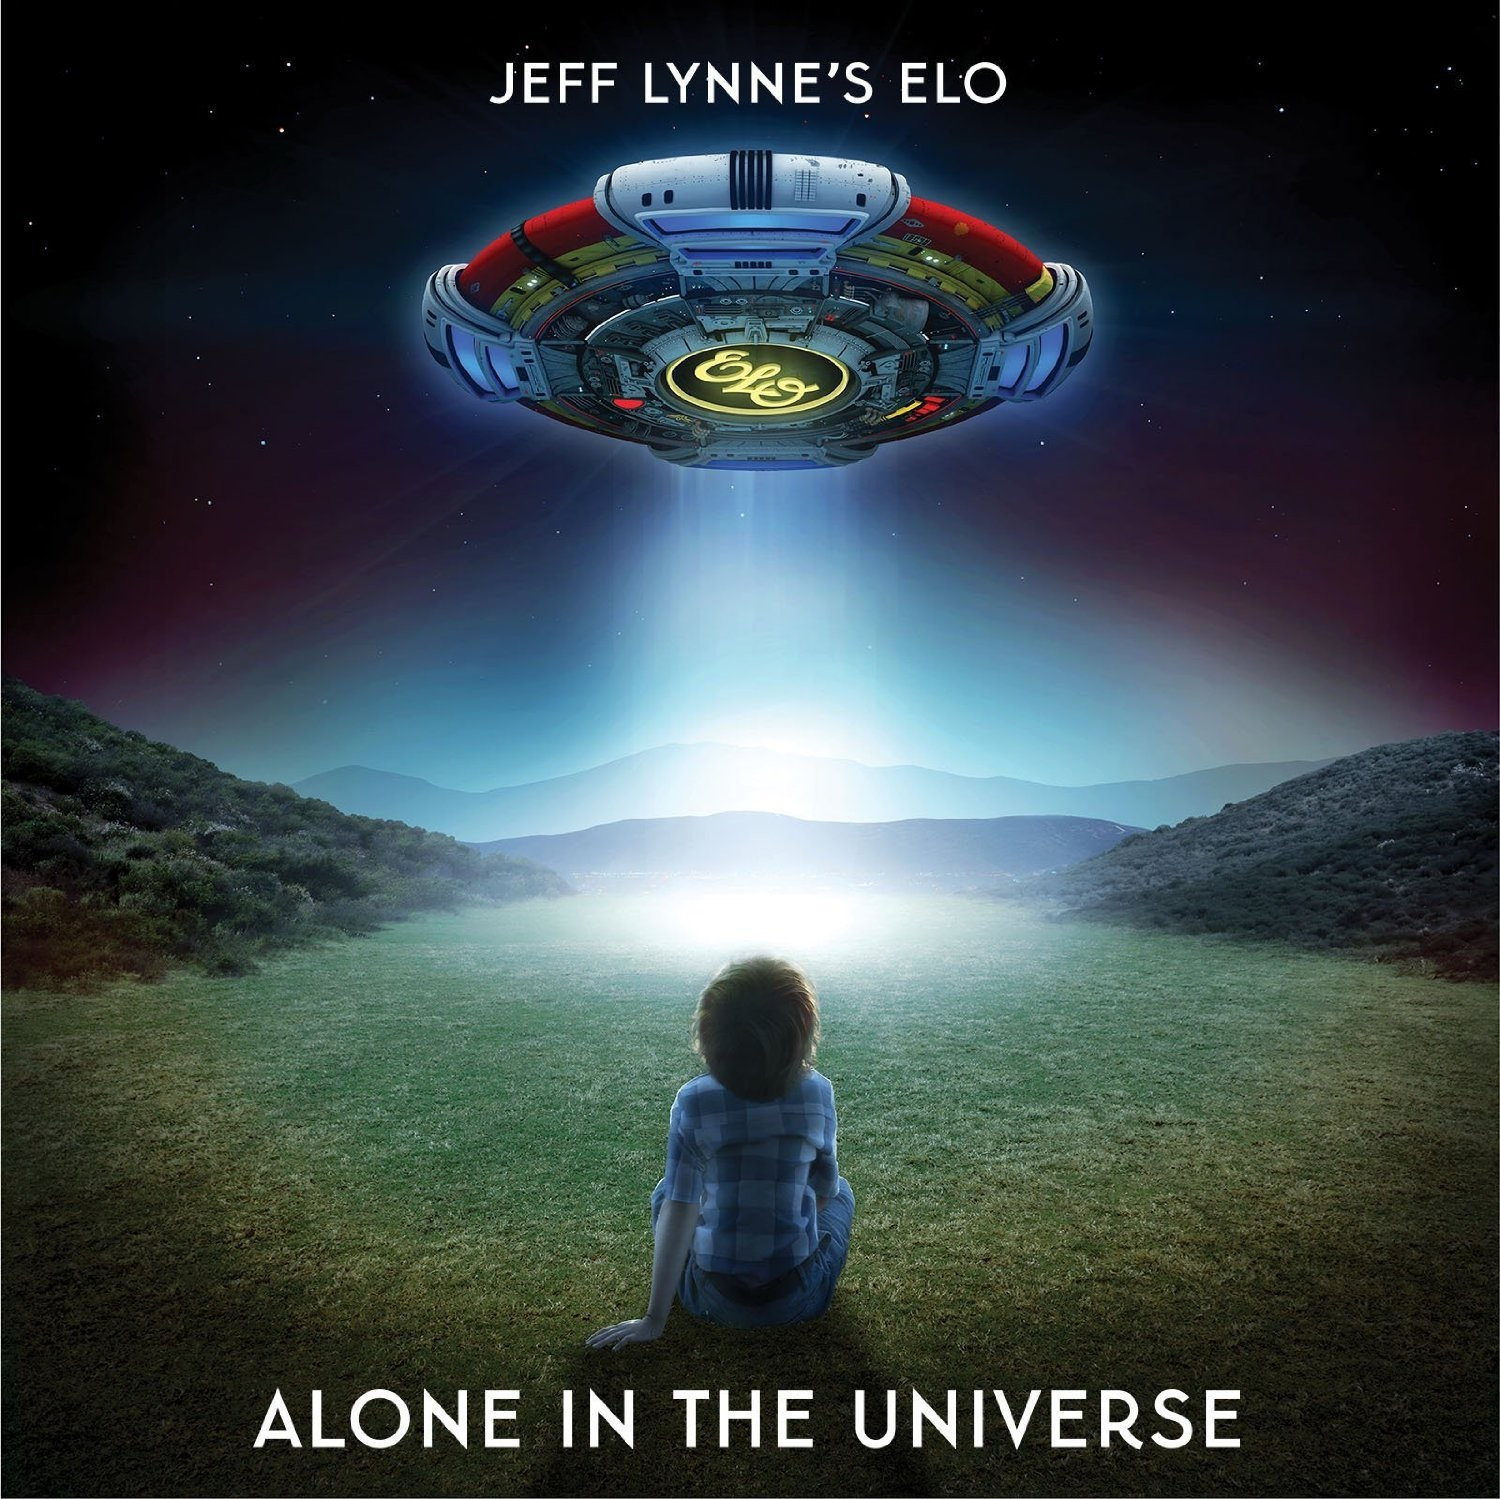 Jeff Lynne's ELO: Alone In The Universe – Deluxe Edition (CD) виниловая пластинка elo jeff lynnes elo alone in the universe